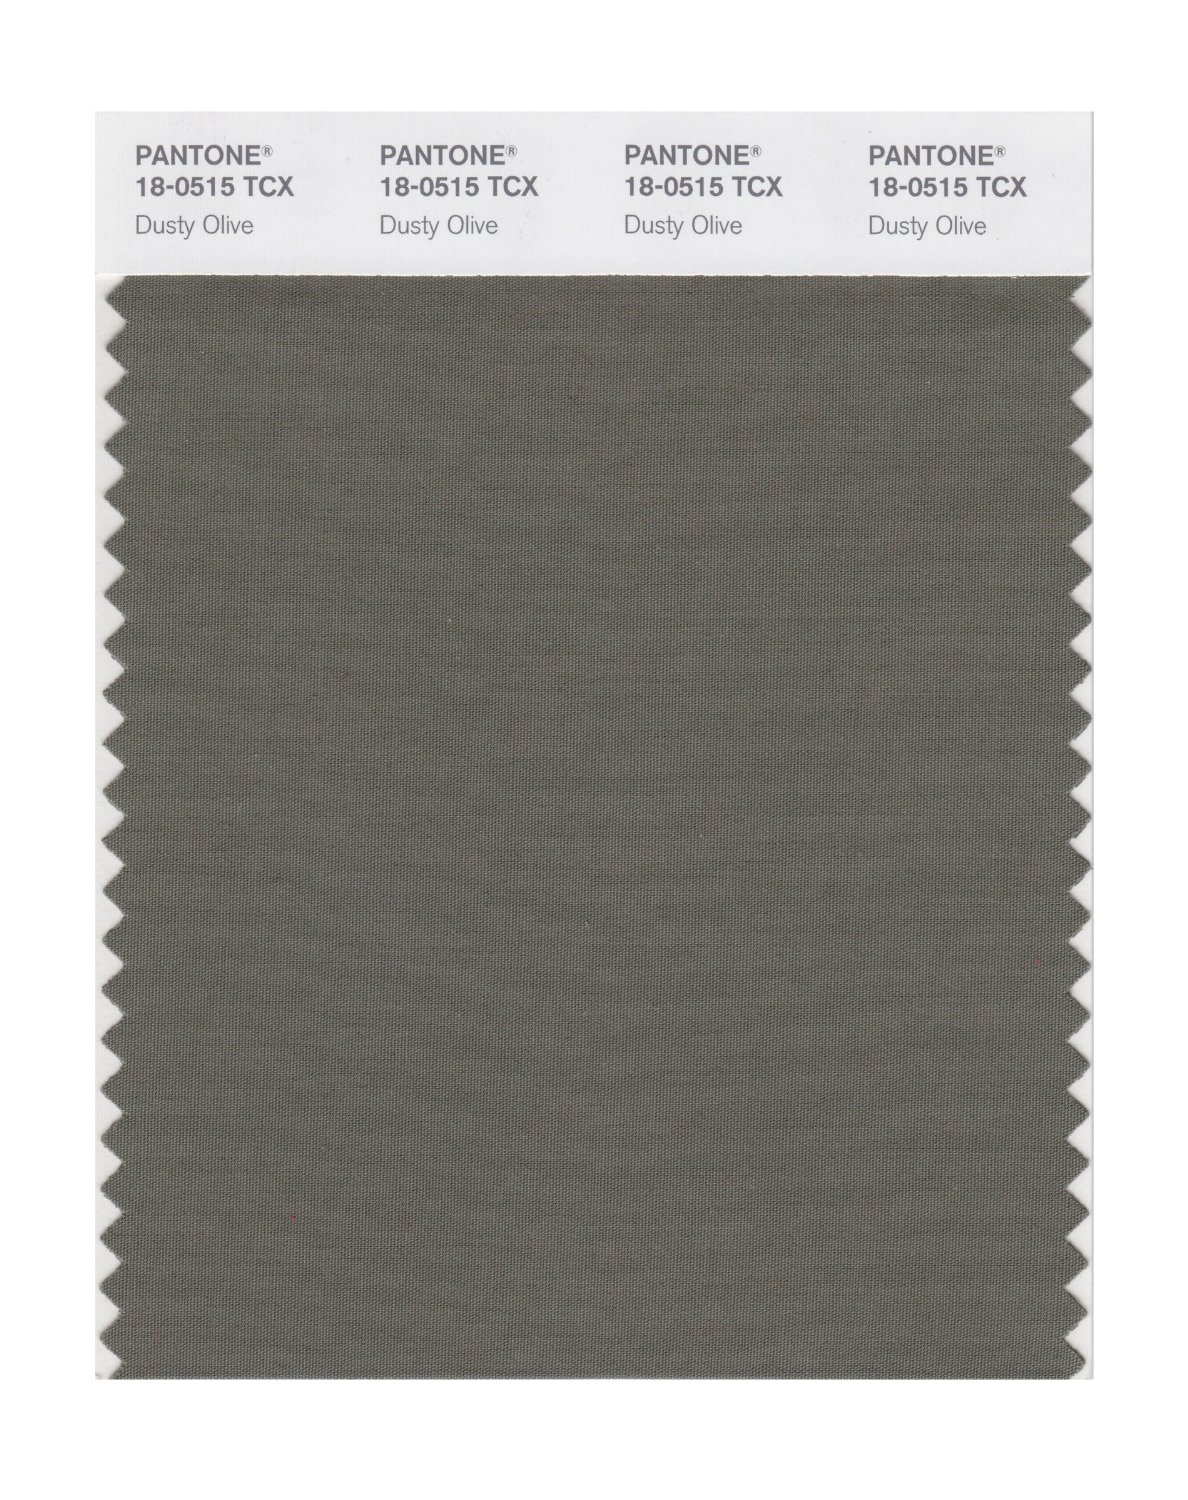 Pantone Smart Swatch 18-0515 Dusty Olive